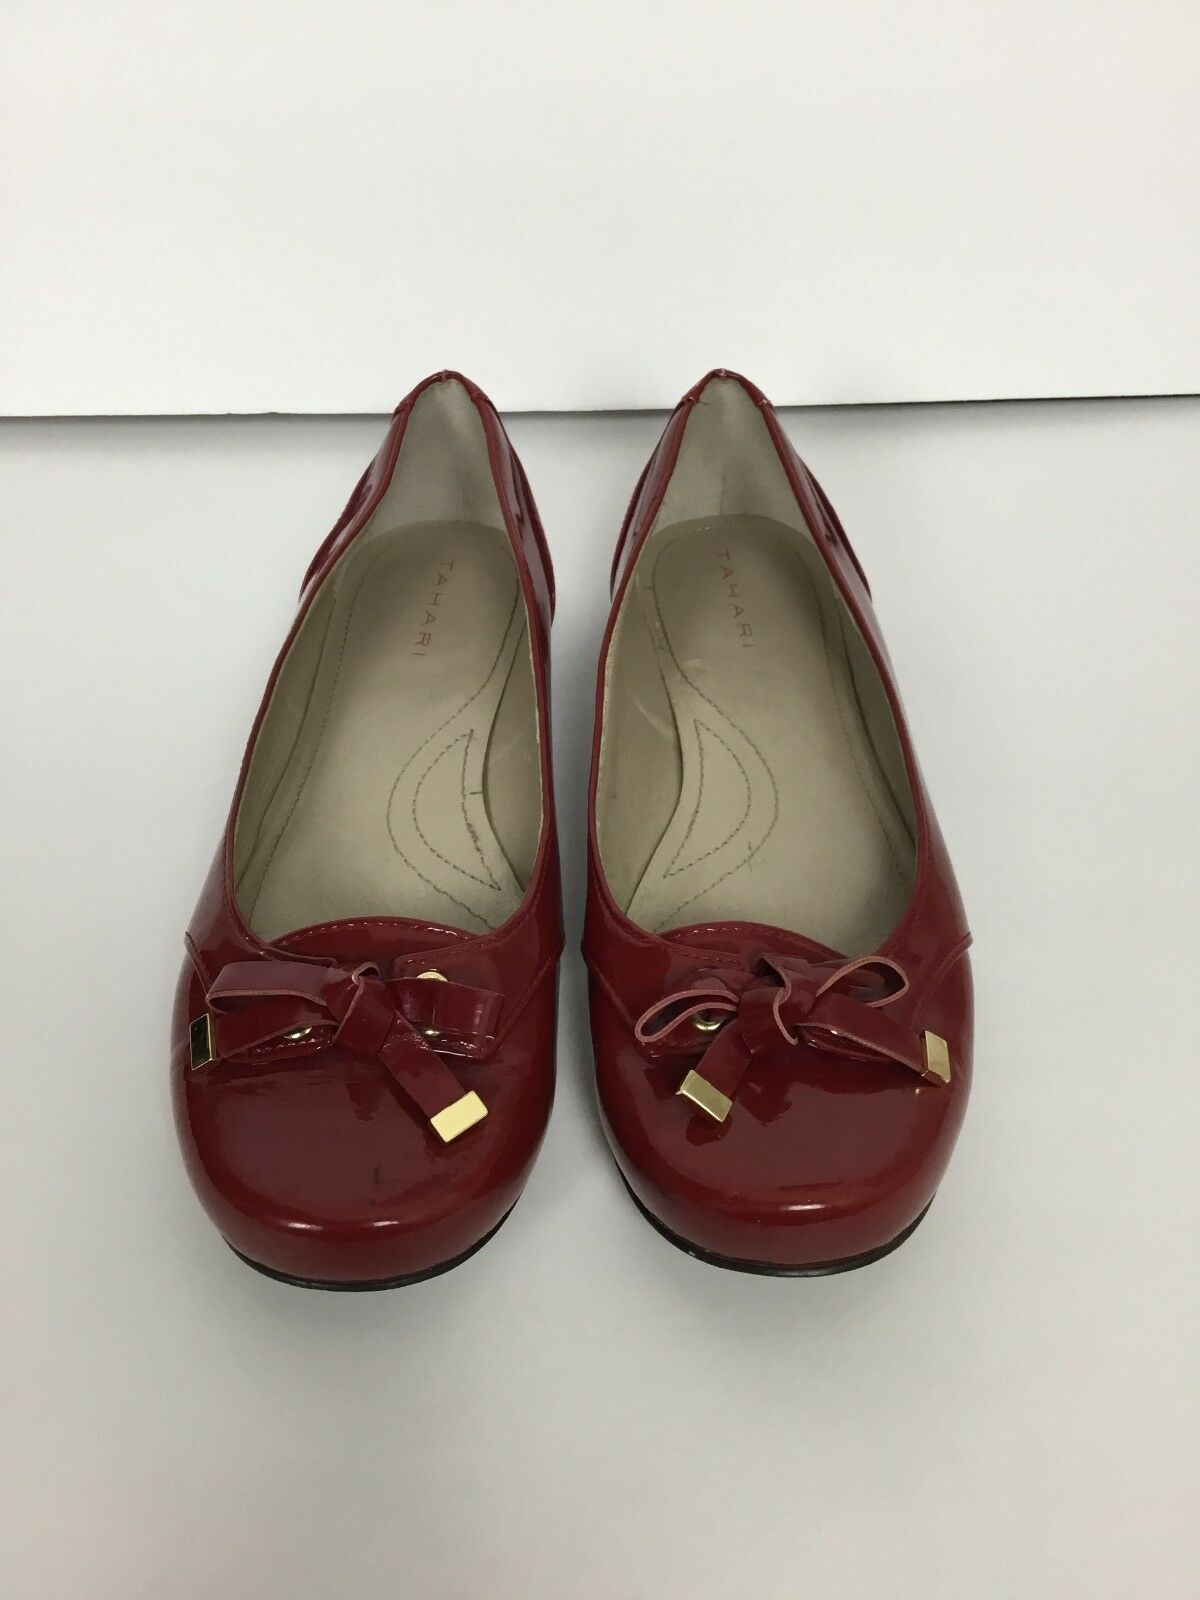 TAHARI RED BOW FLATS BALLERINA SIZE 7.5 ROUND TOE LADIES SHOES